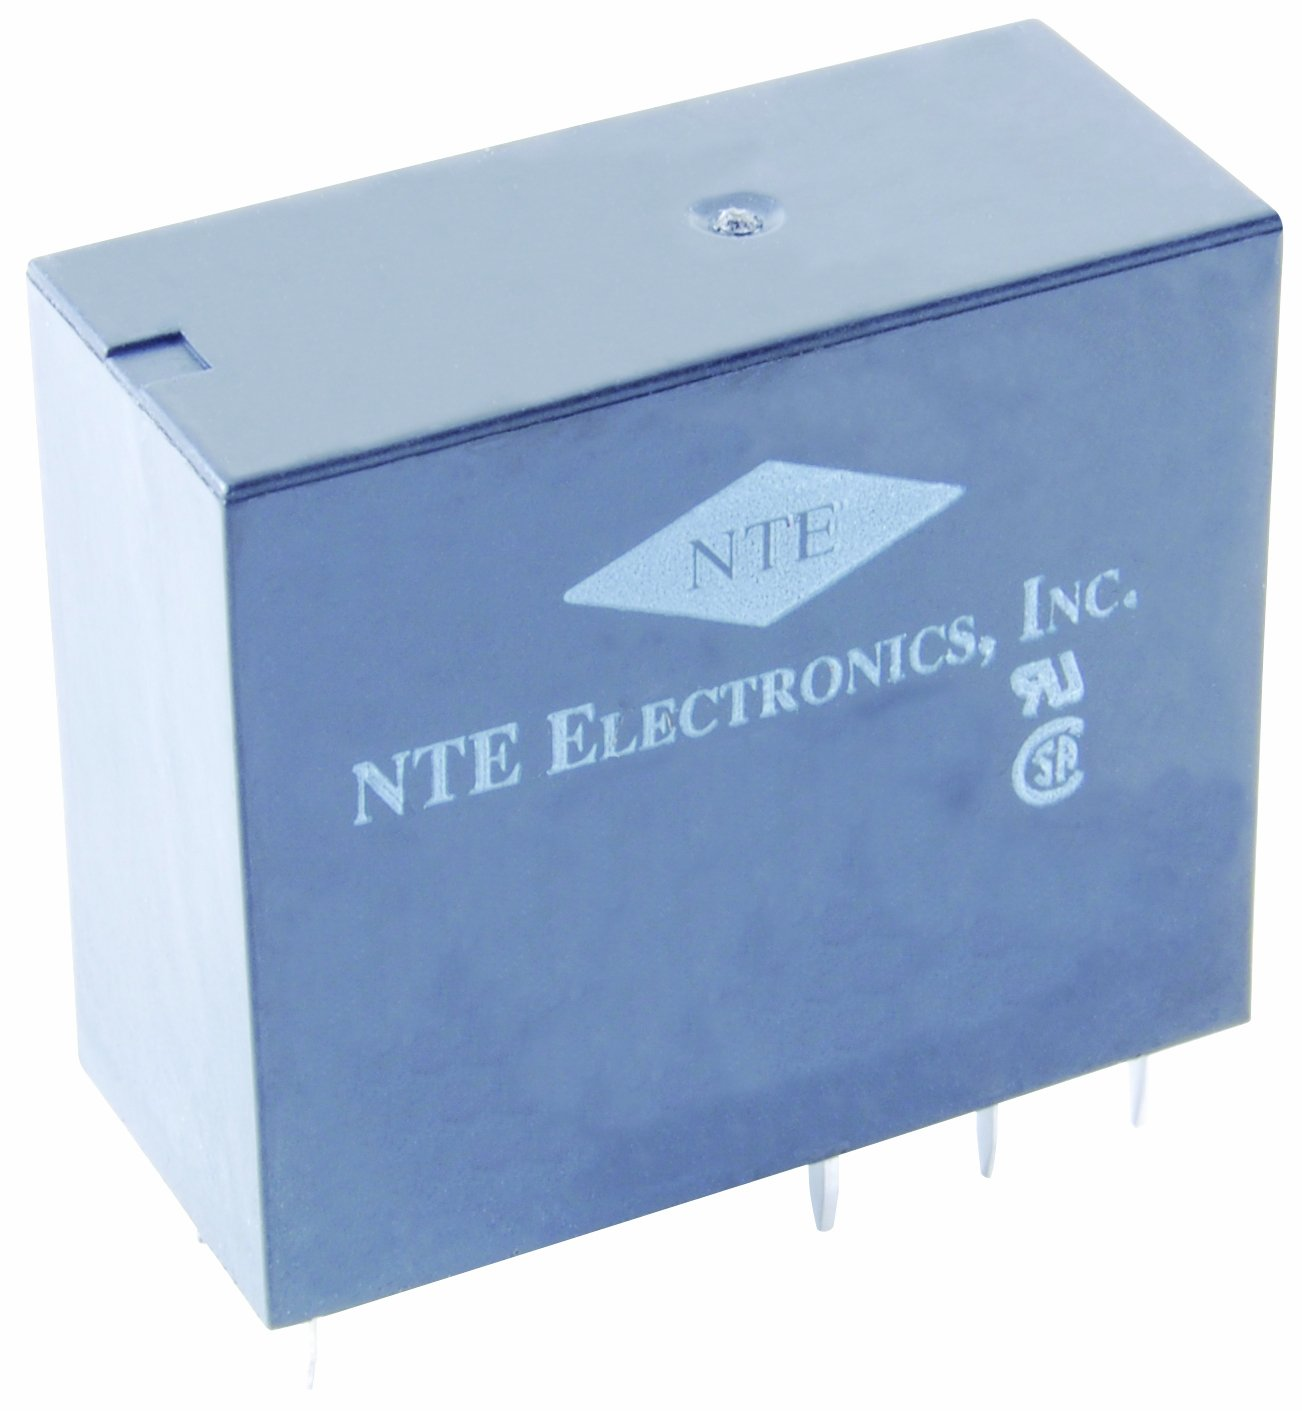 24VAC Inc. NTE Electronics R25-11A10-24 Series R25 PC Board Mount Epoxy Sealed Relay 10 Amp DPDT